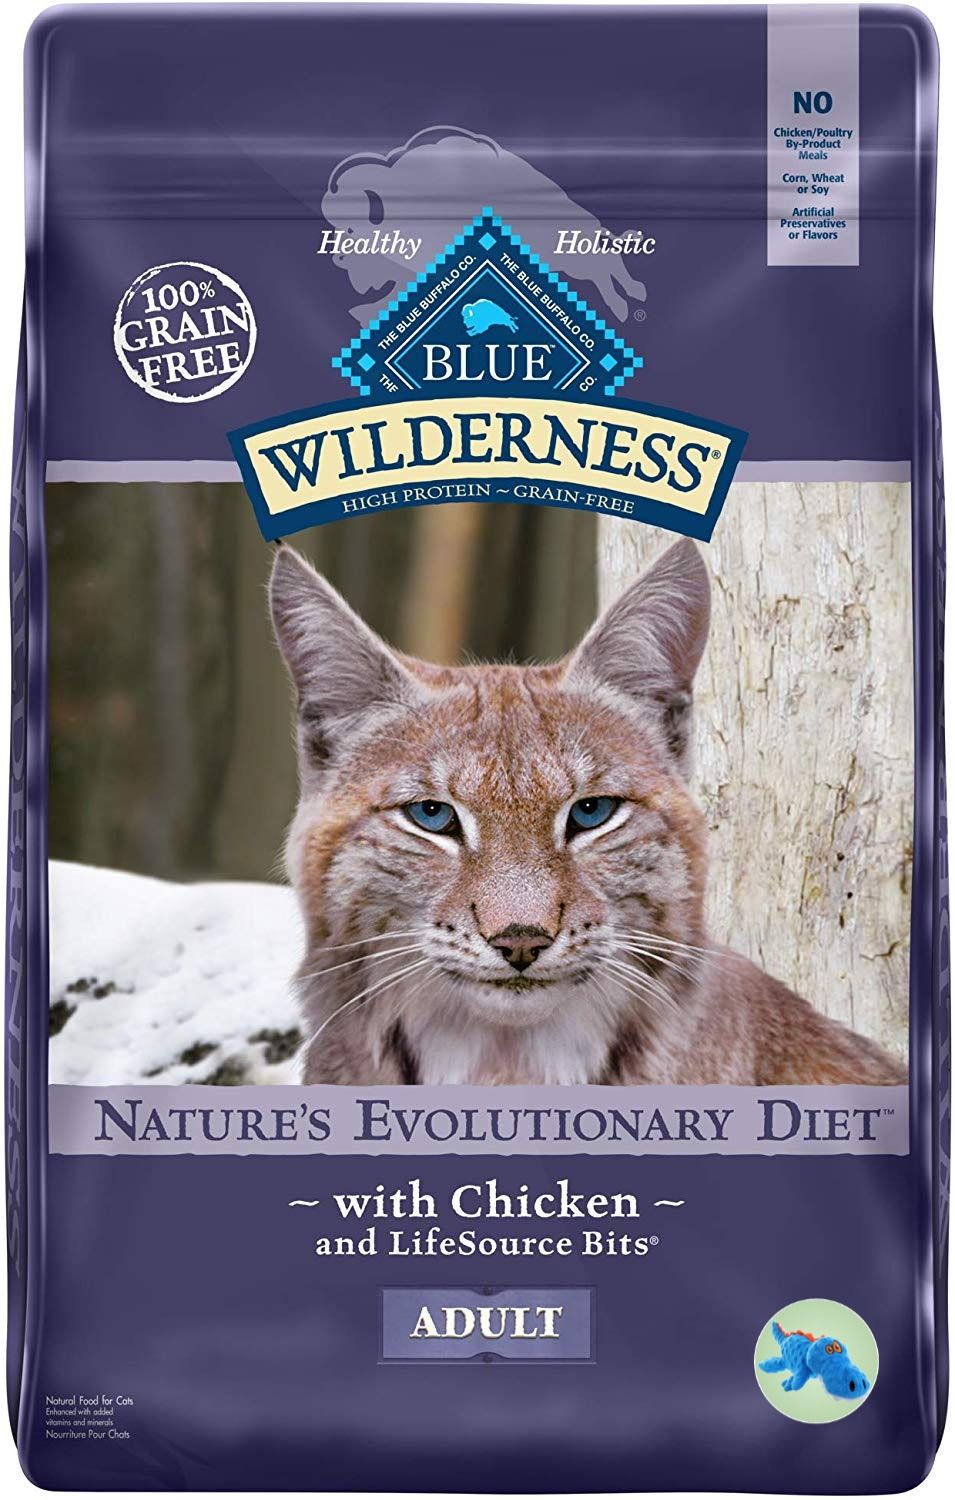 Dry Food For Adult Cats In 2020 Cat Food Brands Best Cat Food Dry Cat Food